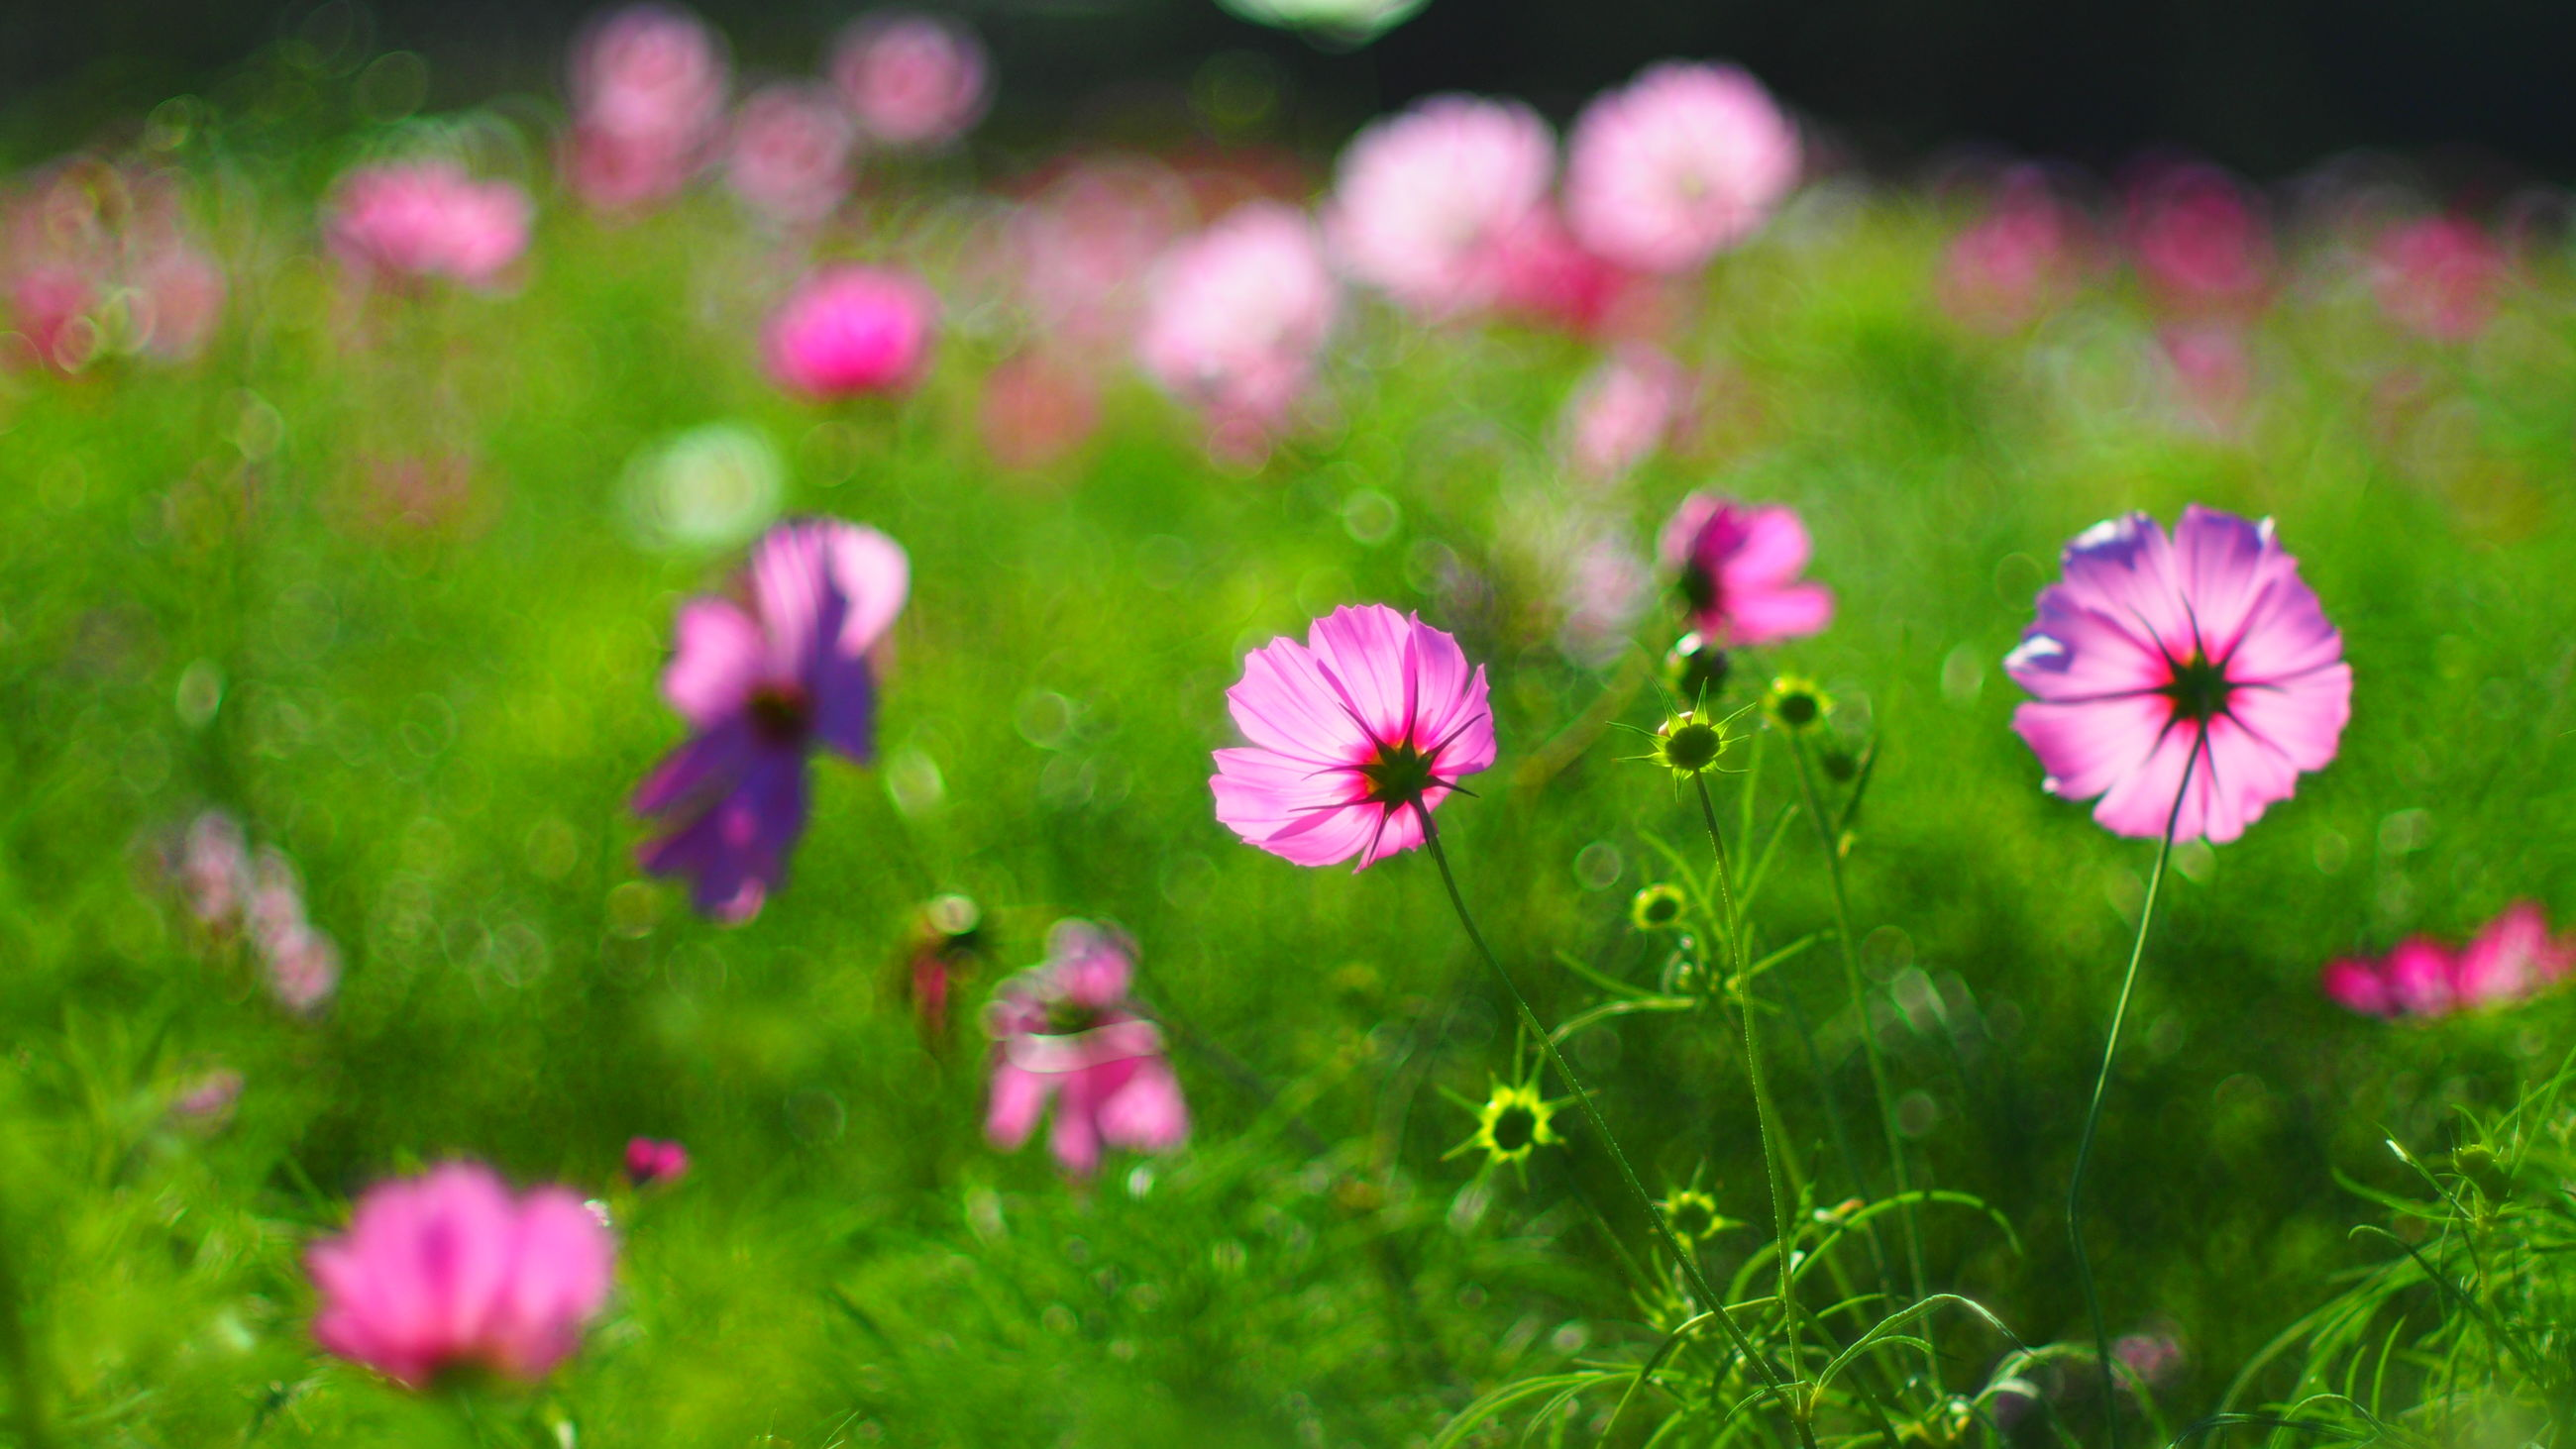 flower, freshness, fragility, growth, pink color, petal, beauty in nature, flower head, blooming, plant, nature, field, focus on foreground, purple, in bloom, close-up, green color, pink, stem, selective focus